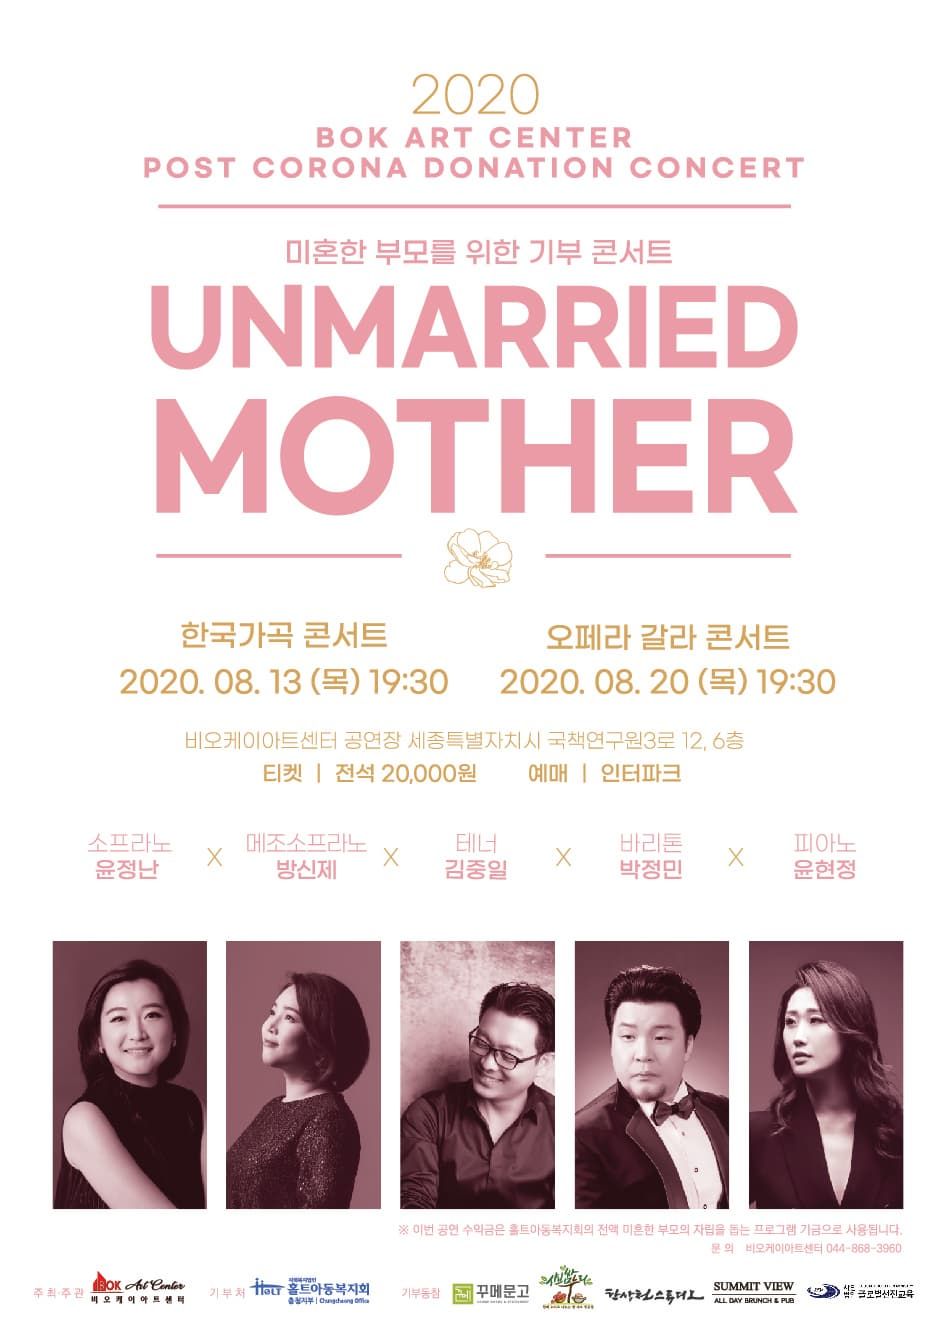 UNMARRIED MOTHER 기부콘서트